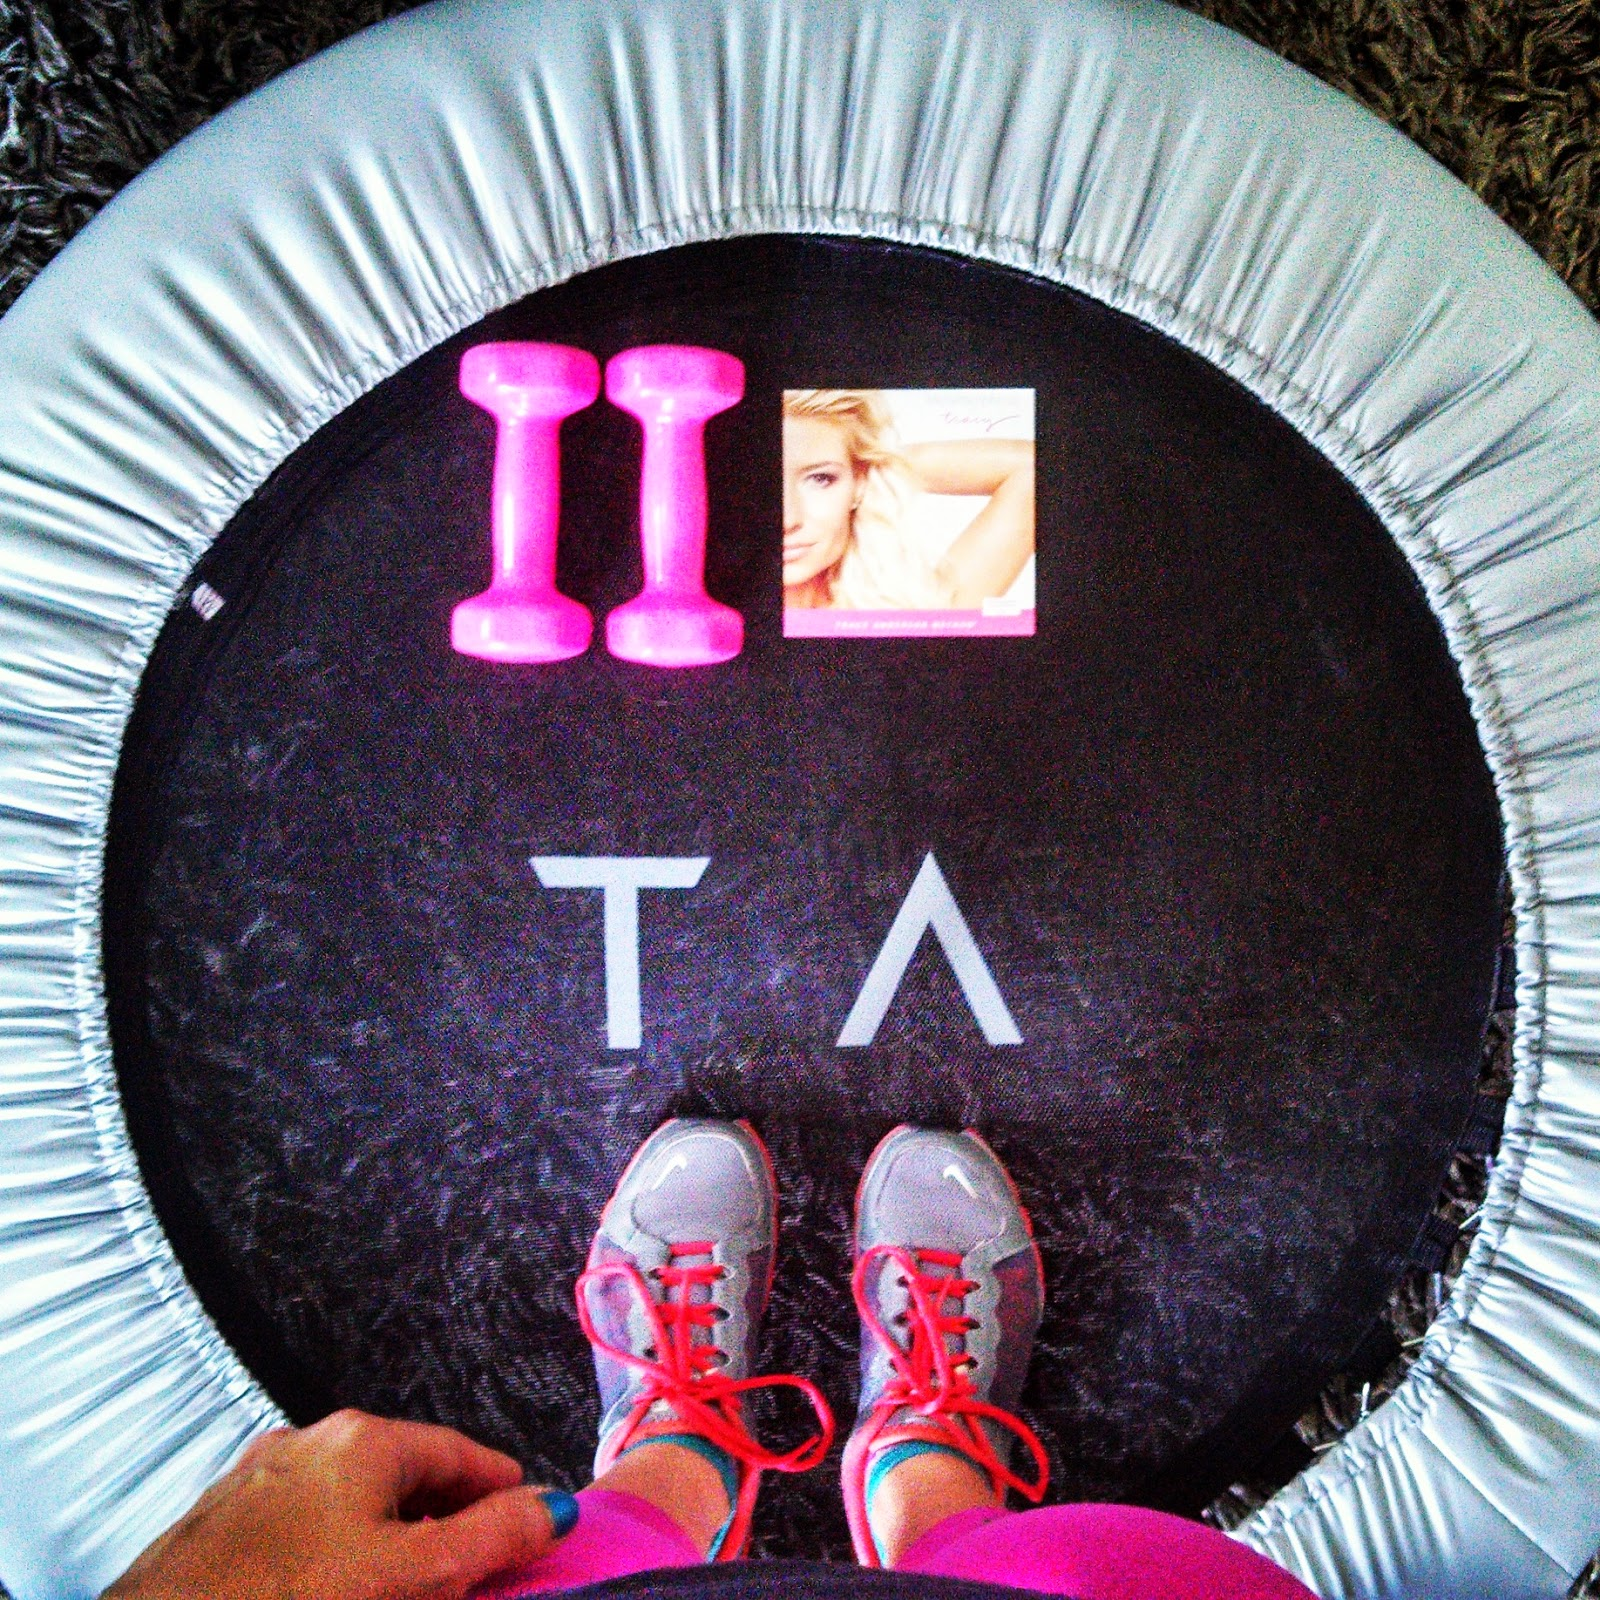 Fitness Trampoline Dvd: Bedazzles After Dark: Insta-Life [photos]